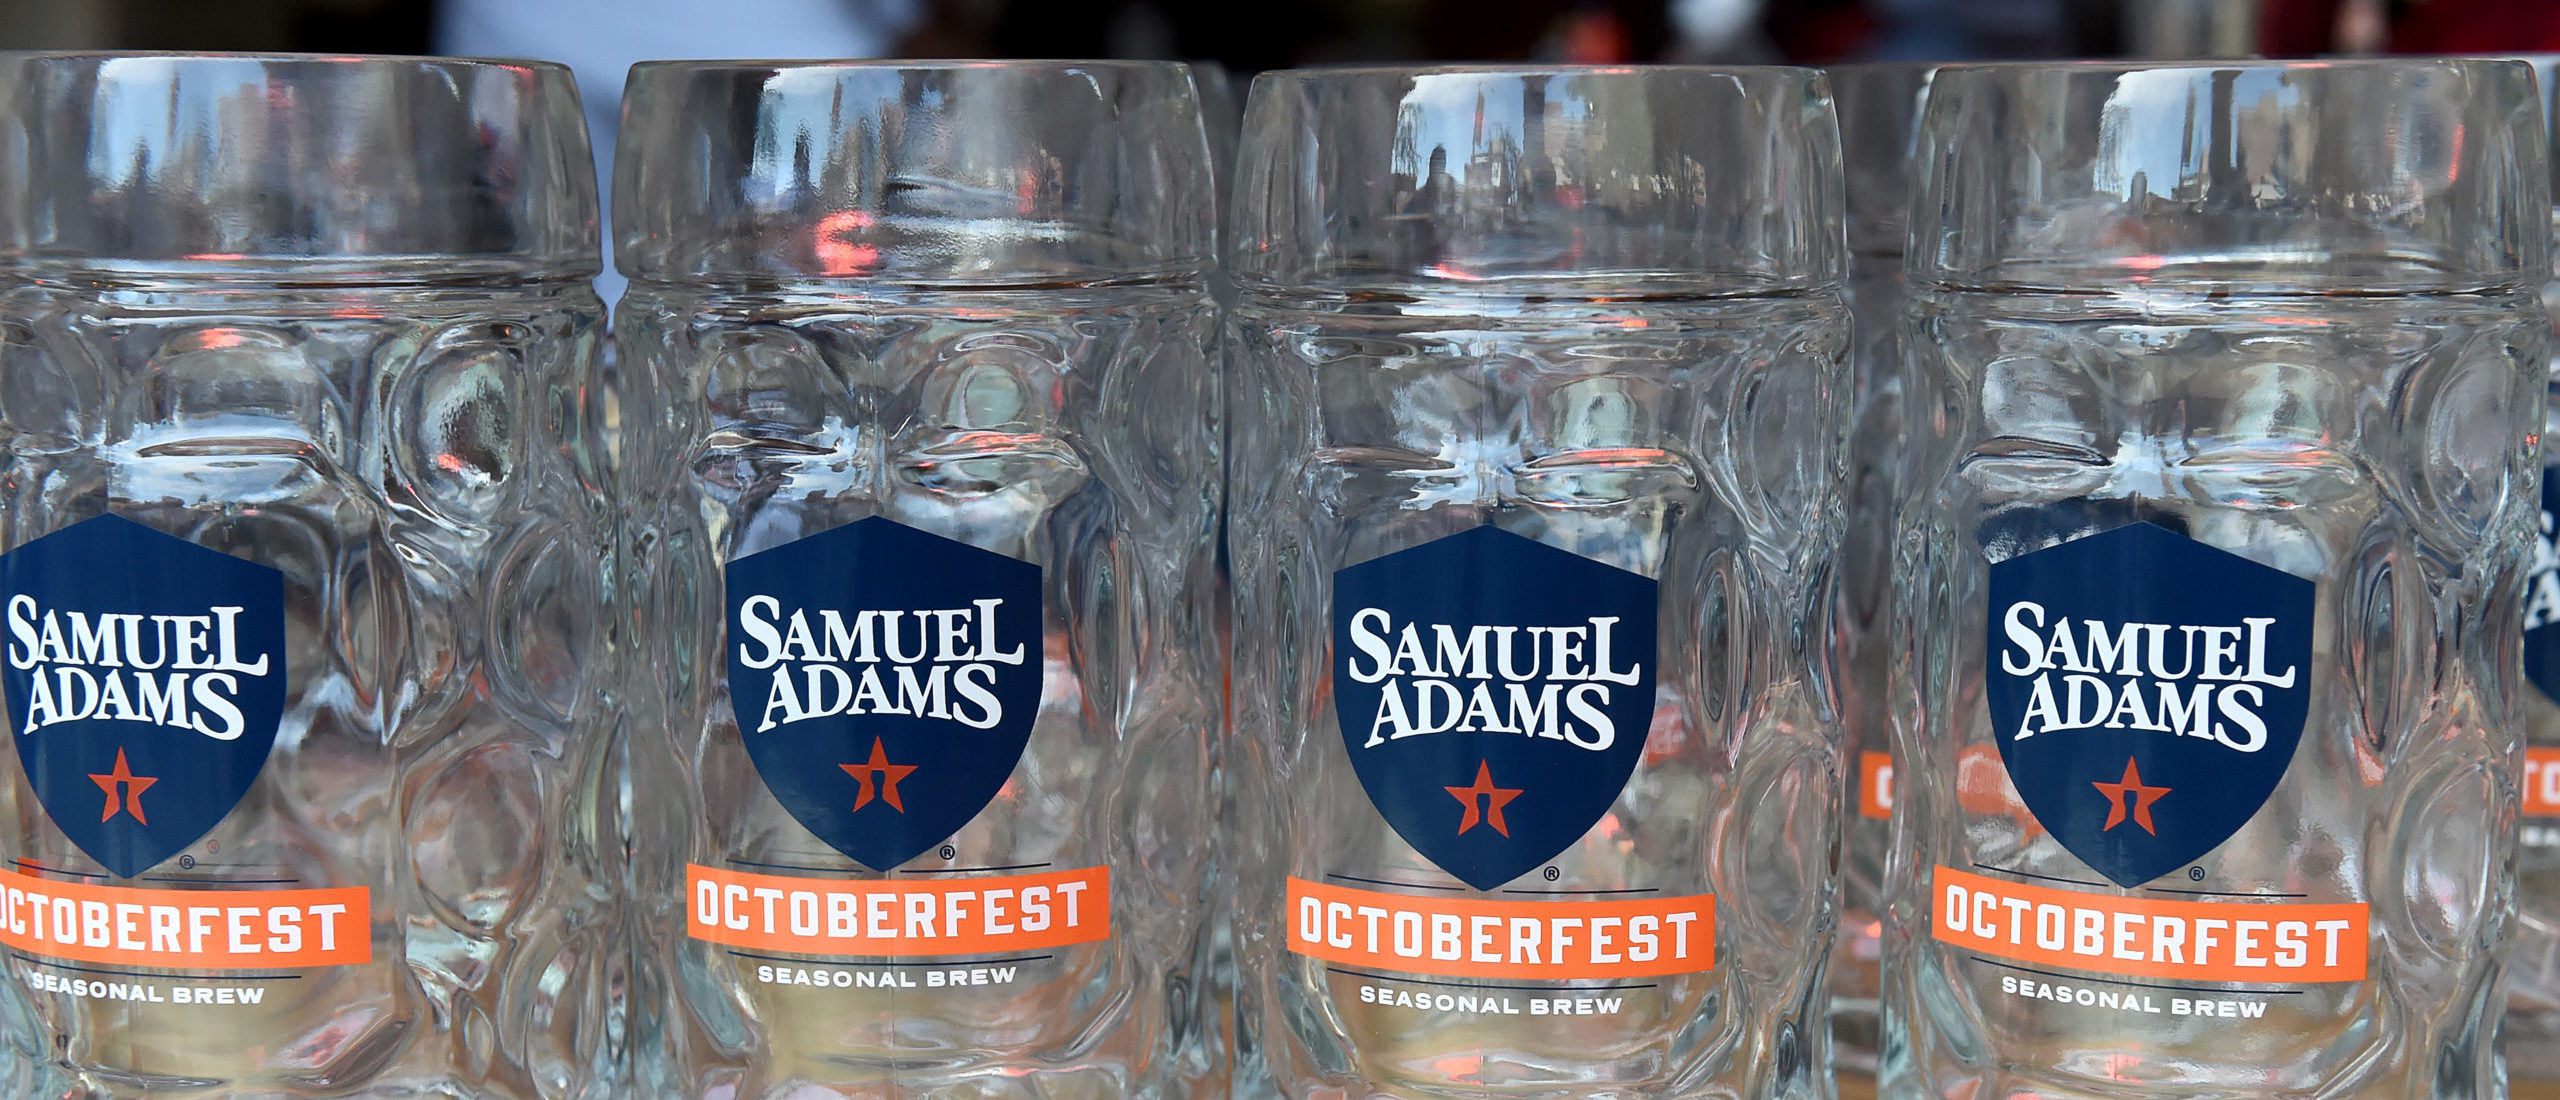 NEW YORK, NEW YORK - OCTOBER 12: A view of Samuel Adams during Oktoberfest hosted by Andrew Zimmern at The Standard Highline on October 12, 2019 in New York City. (Photo by Daniel Zuchnik/Getty Images for NYCWFF)